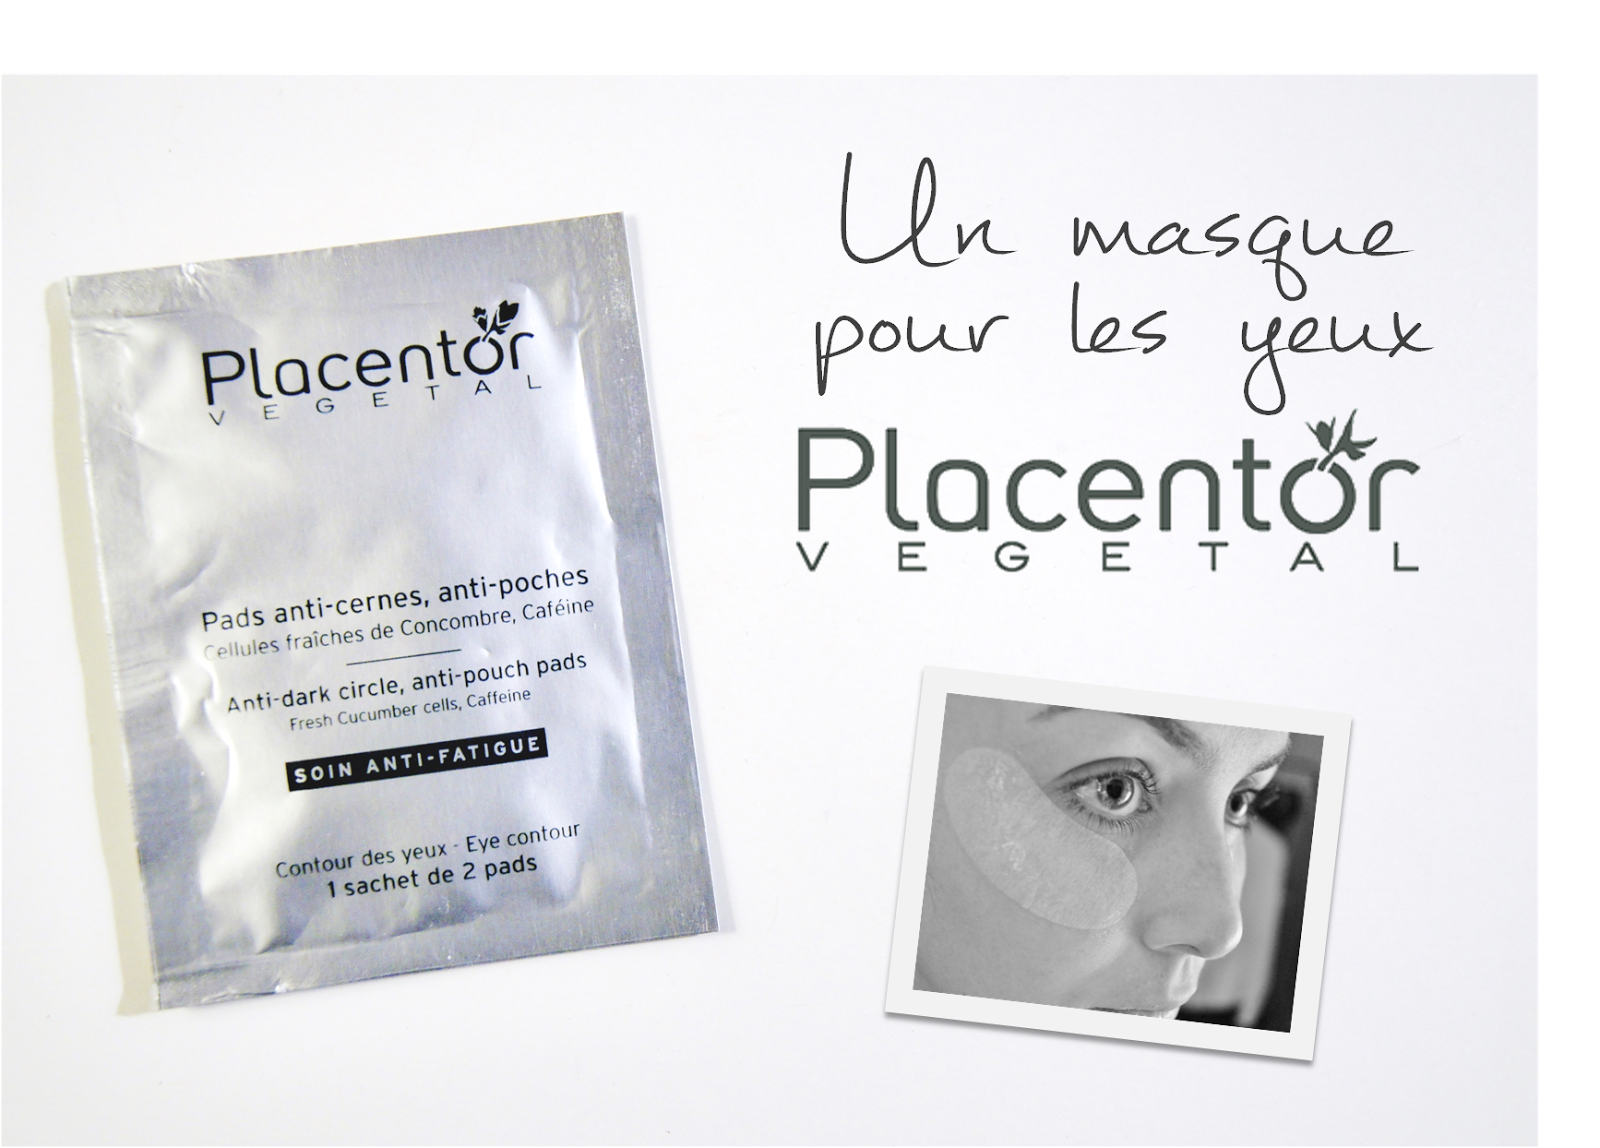 placentor vegetal, masque yeux, pads yeux, anti cernes